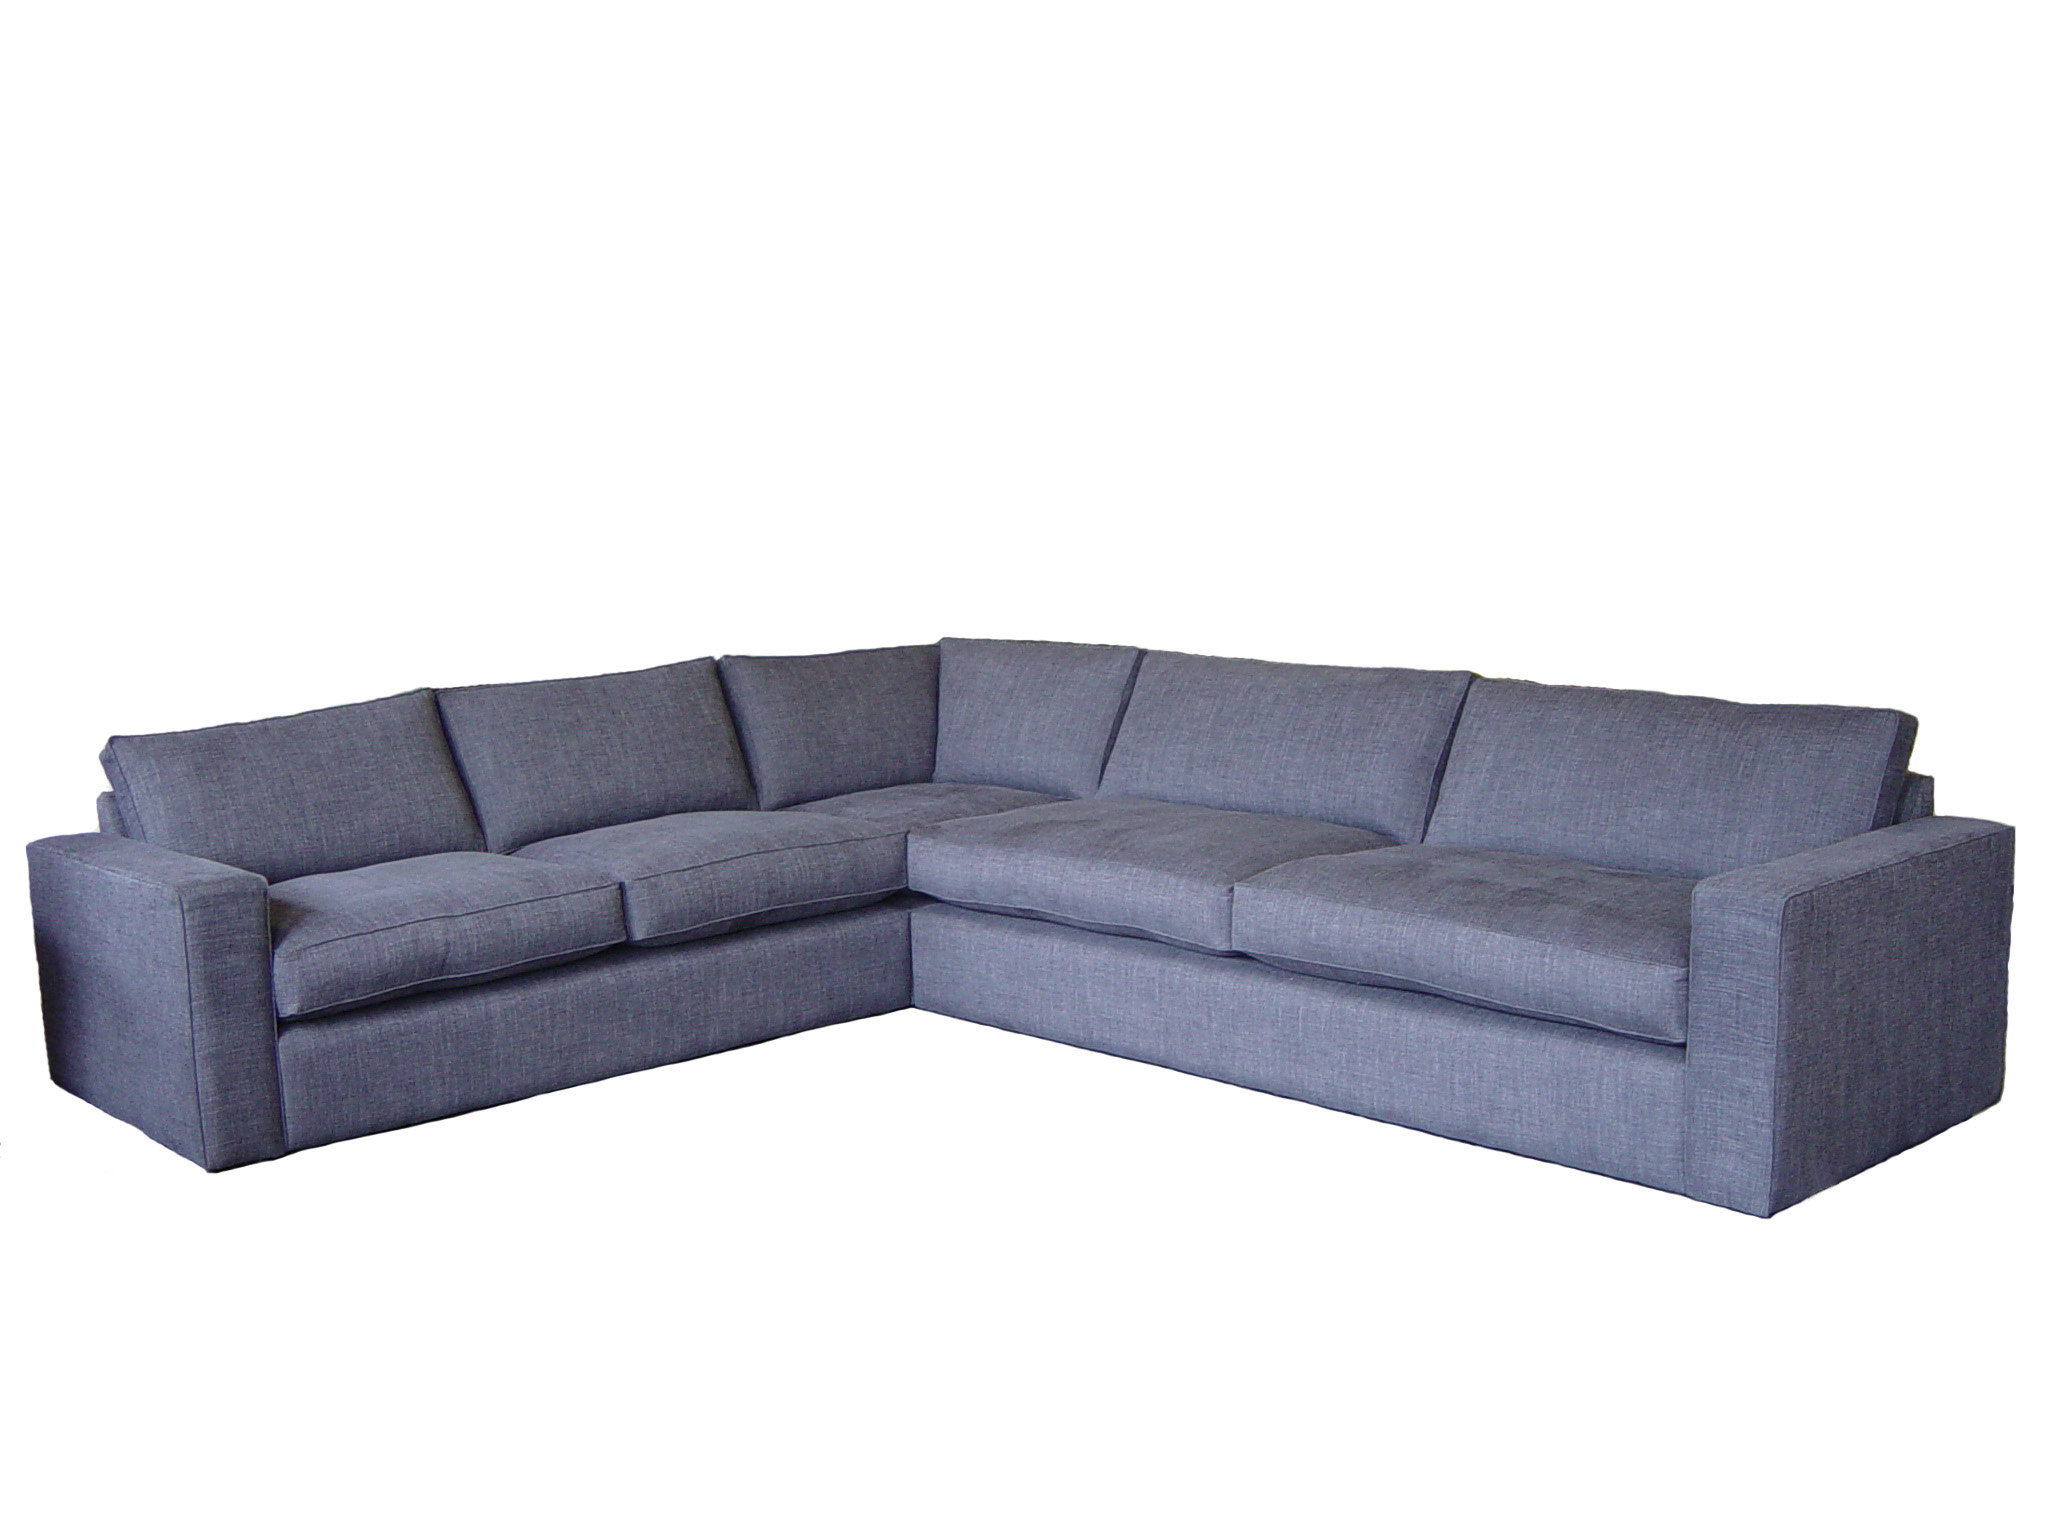 cambridge large corner sofa tms